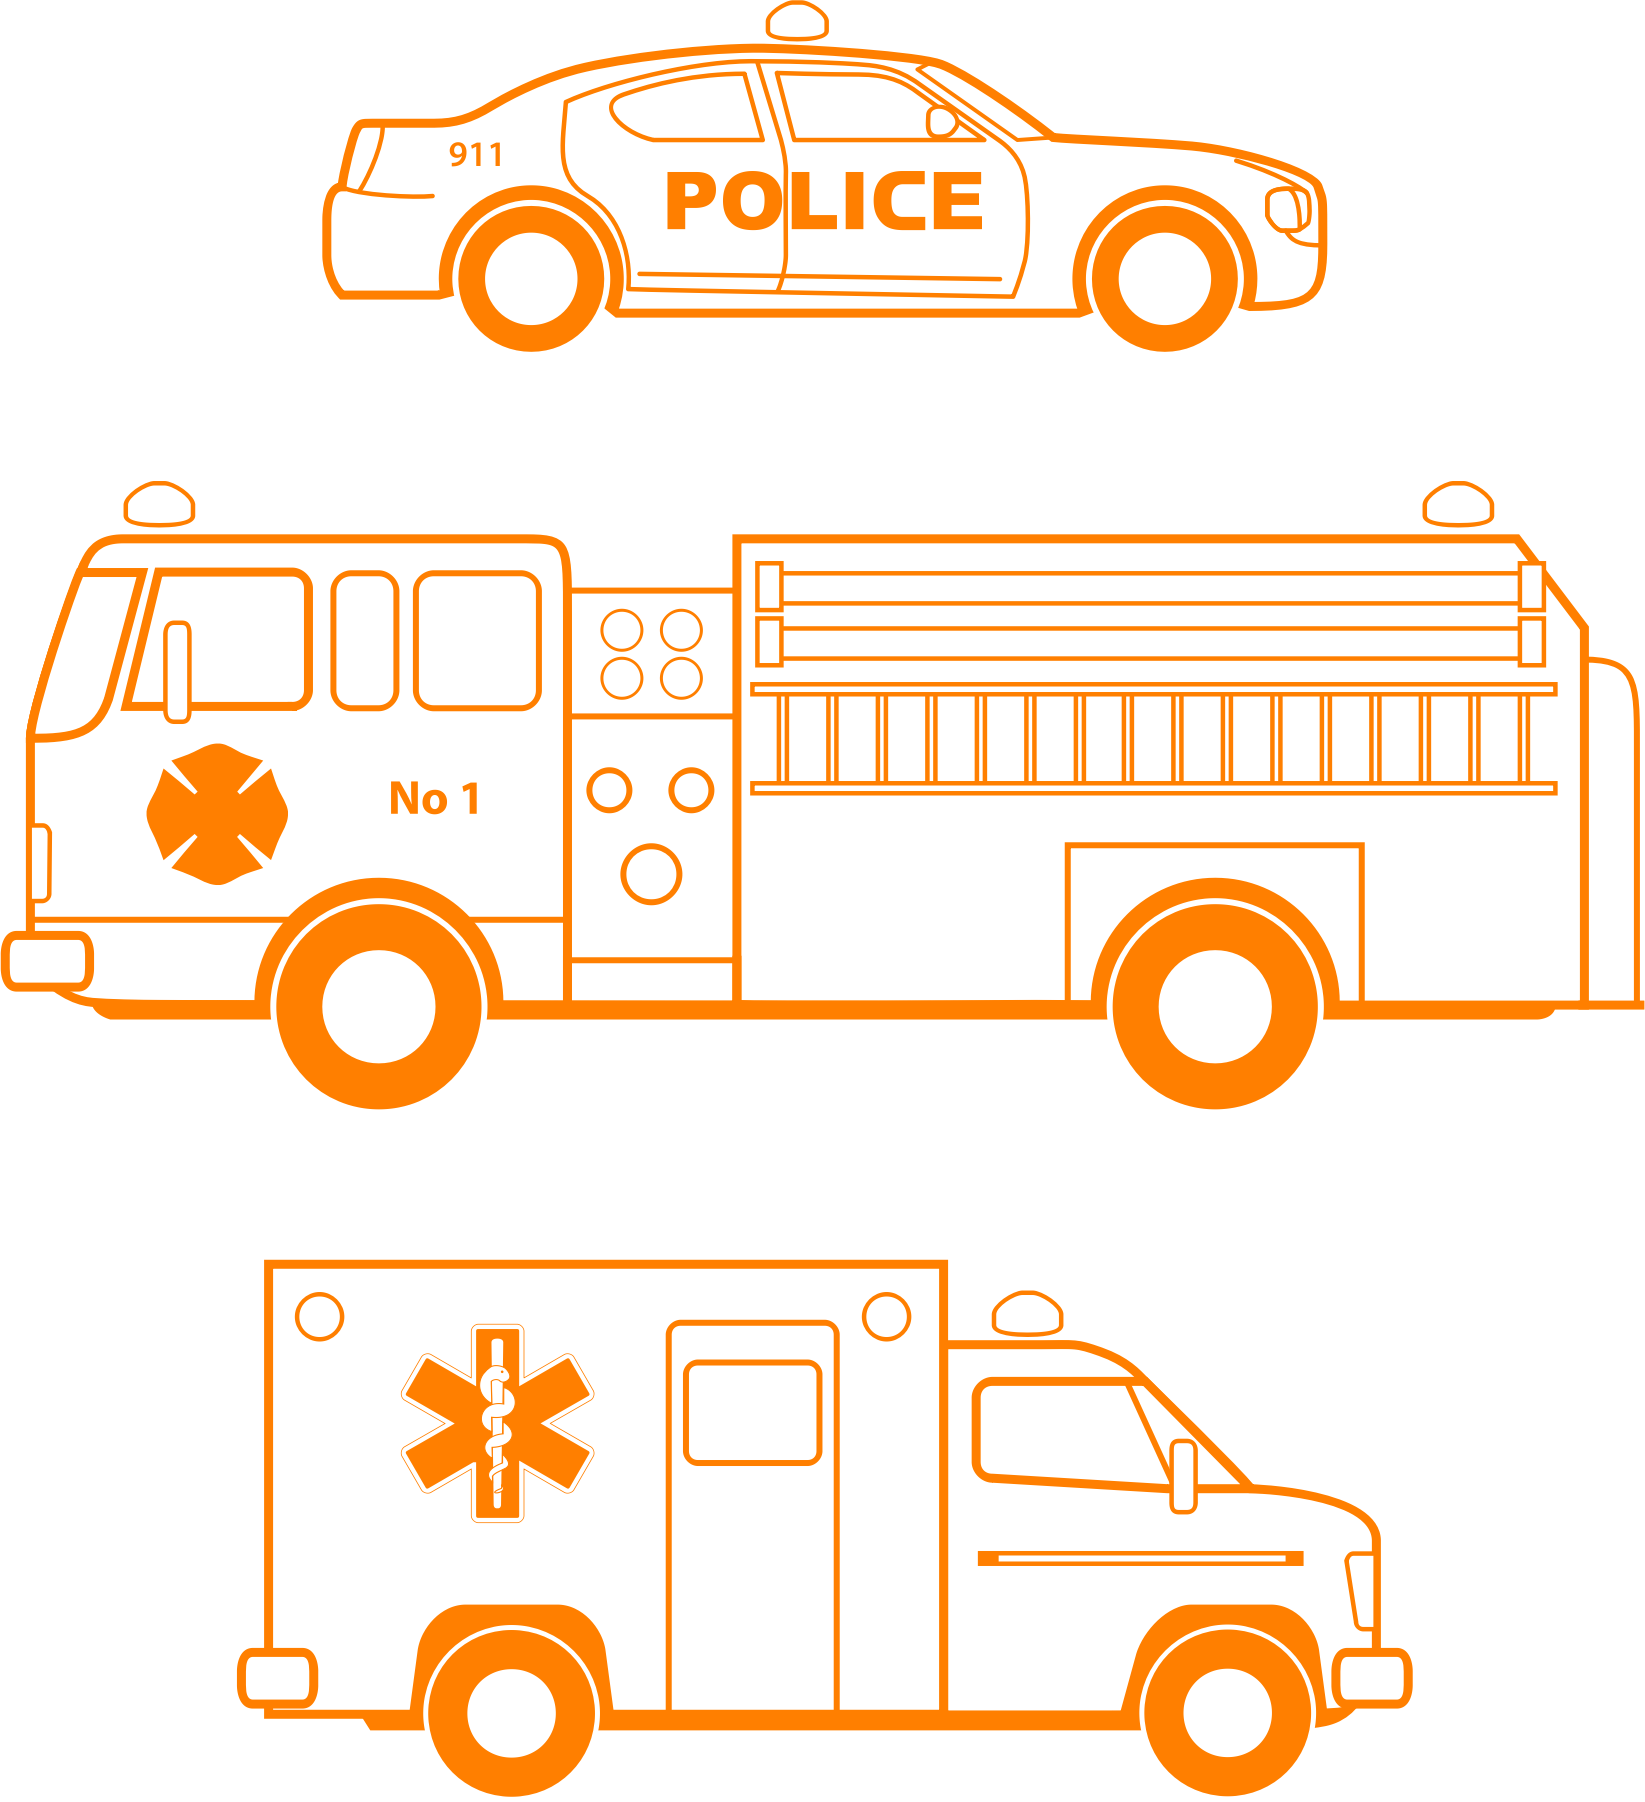 Police ema by bnsonger. Clipart cars fire